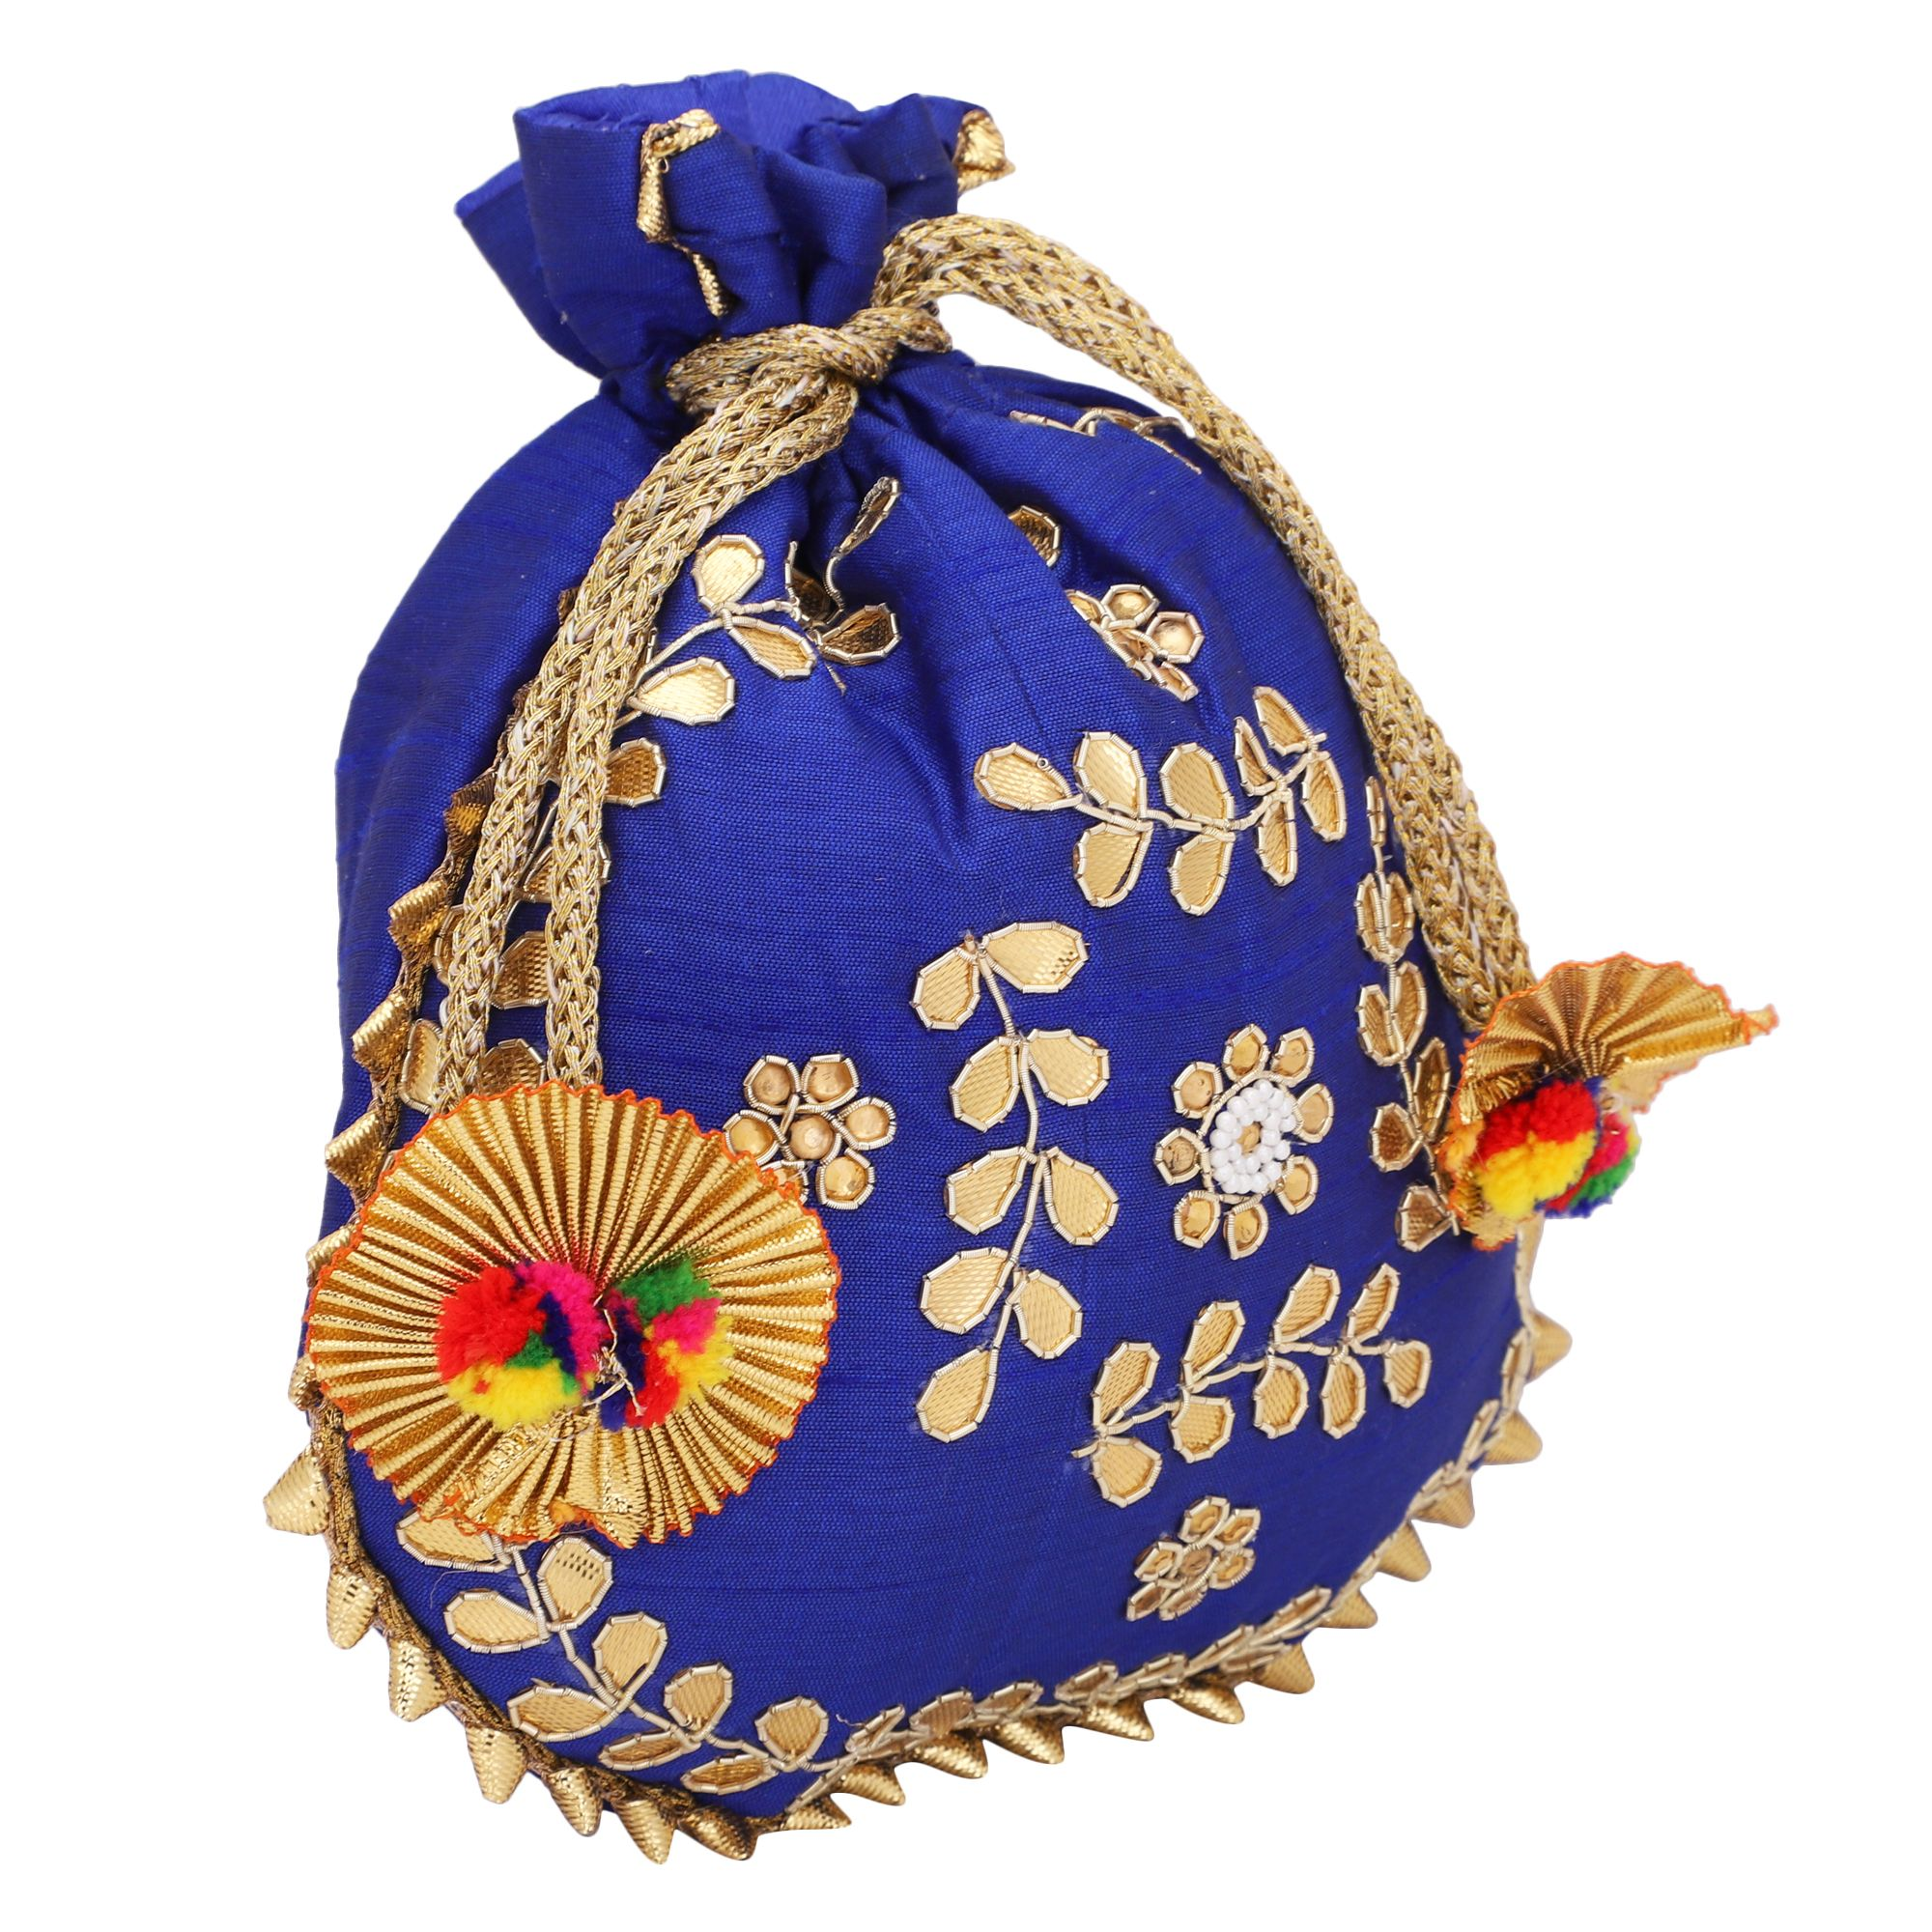 Dupion Silk Gotapatti Potli Bag in Royal Blue 1